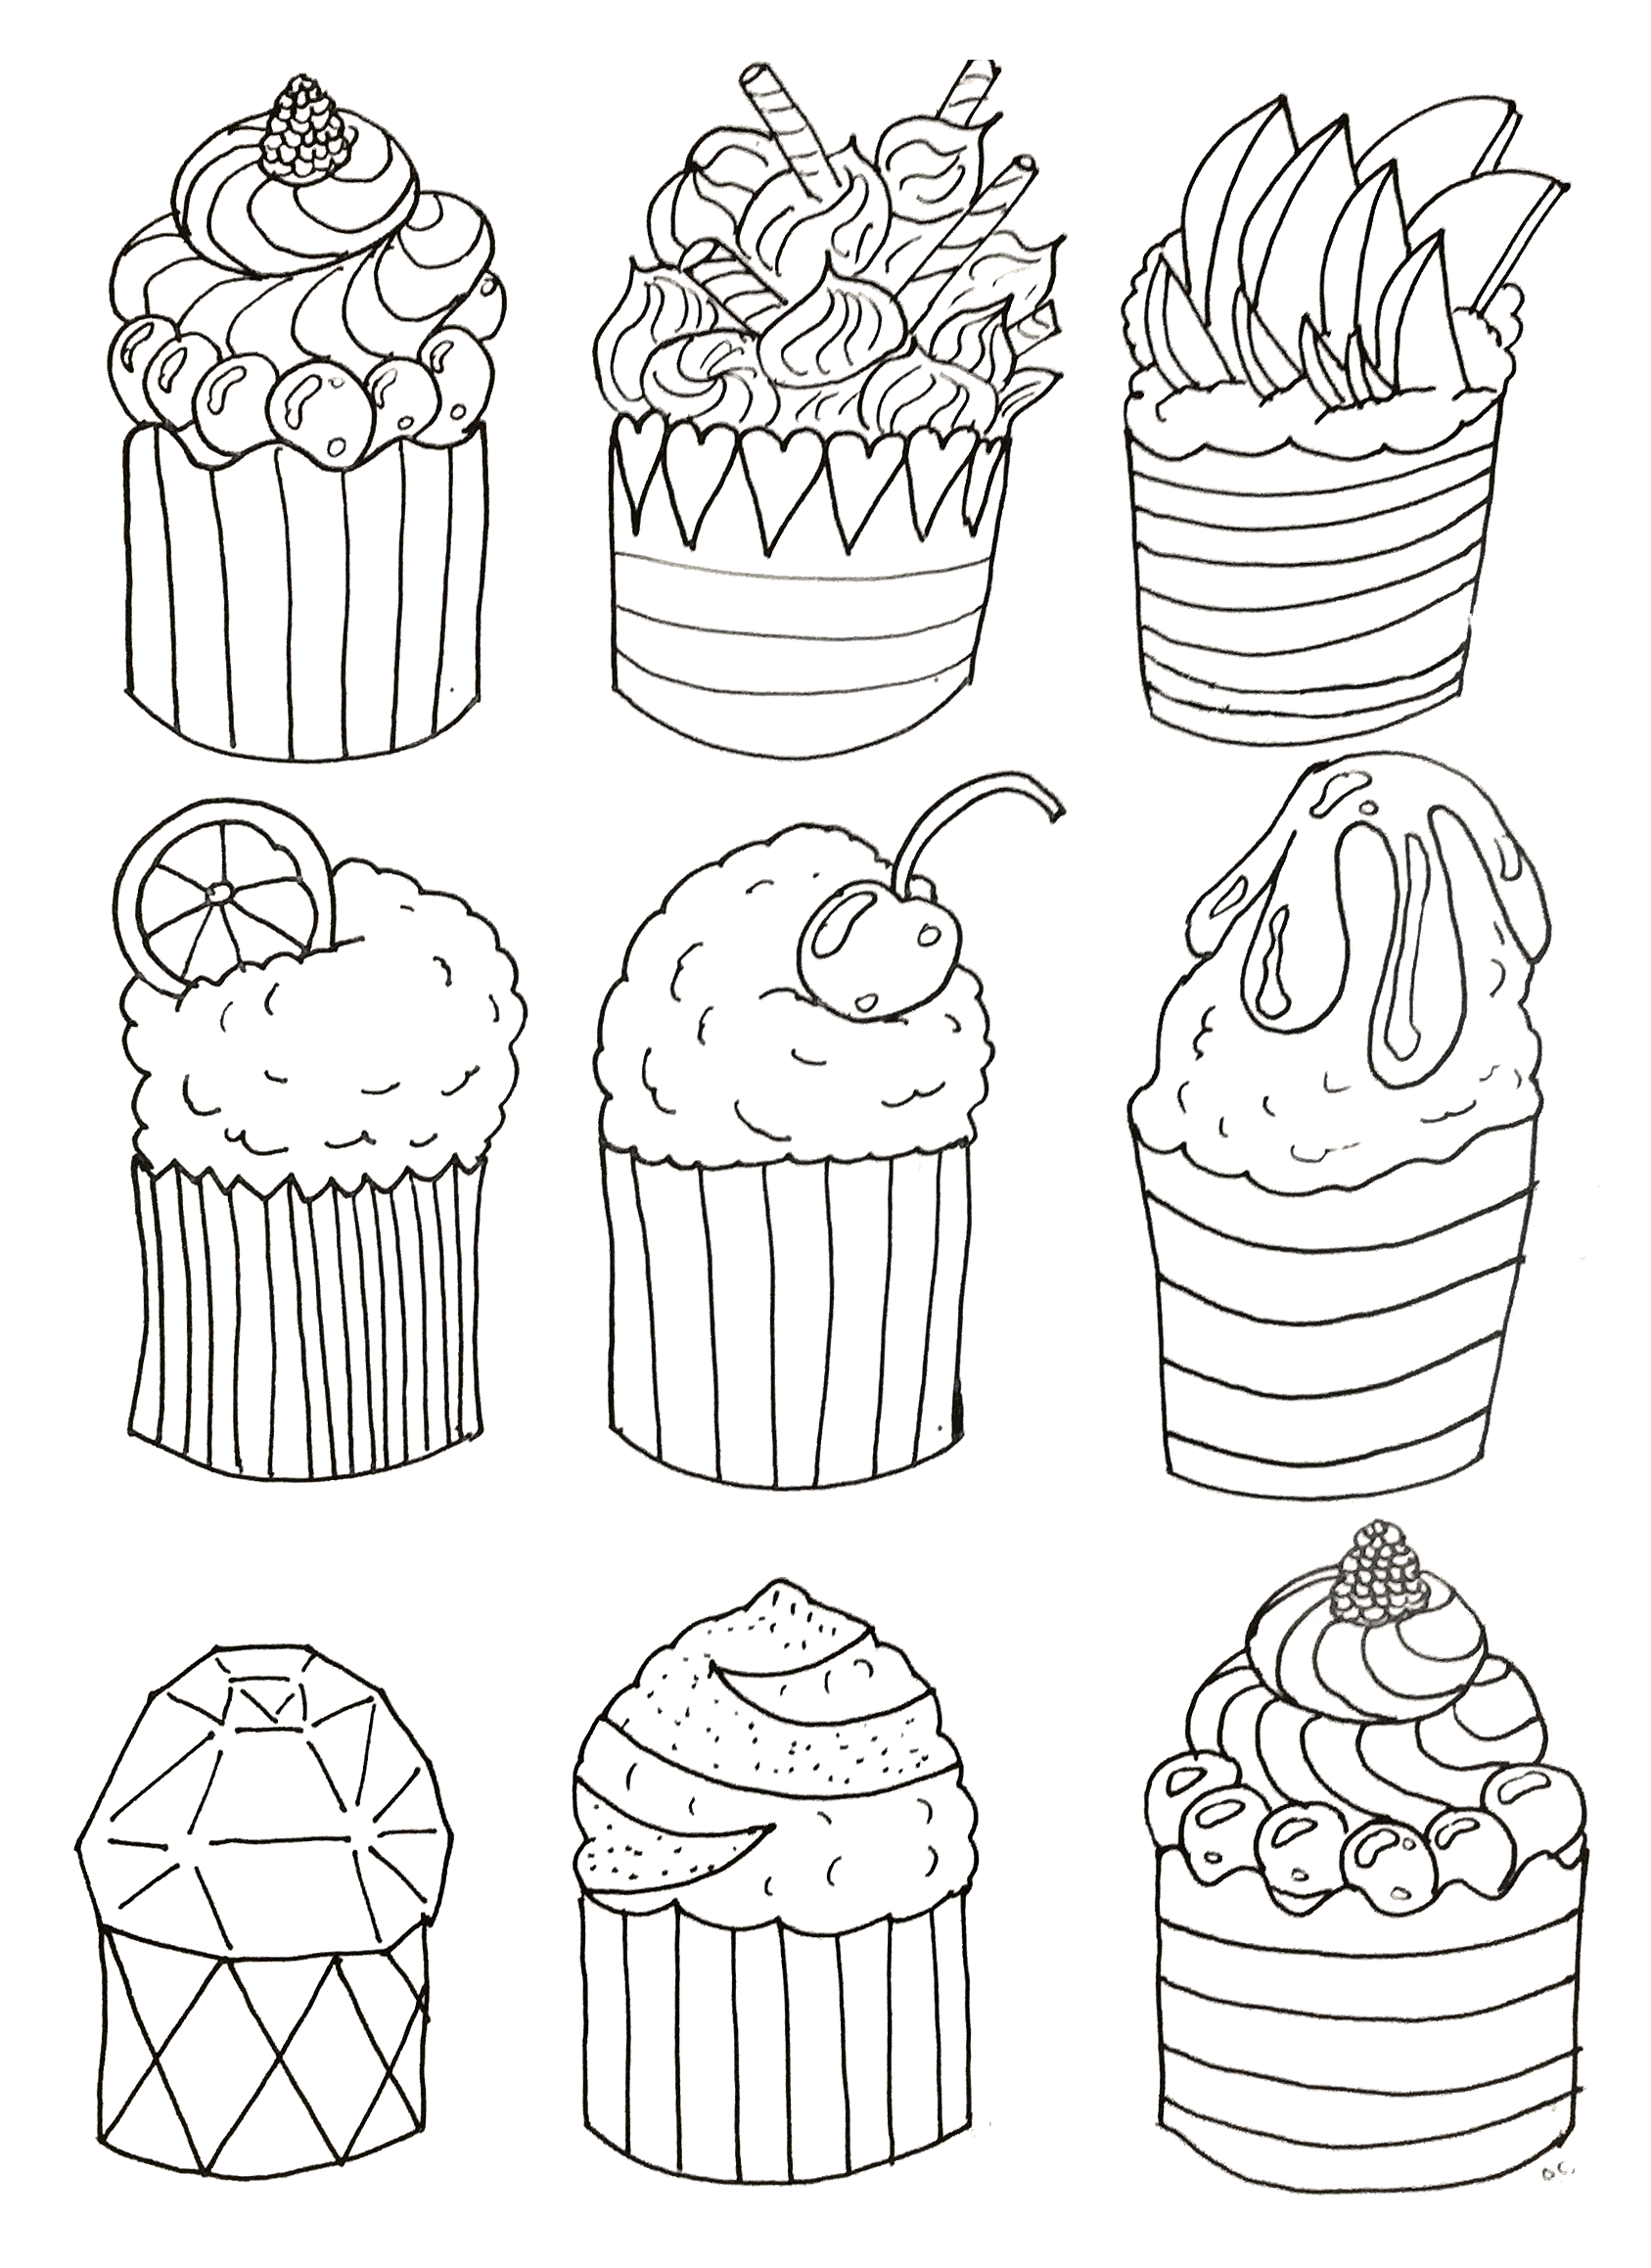 Simple Cupcakes Coloring Page Original Drawing To Print And Color By Olivier Download For Free On Pages Adults